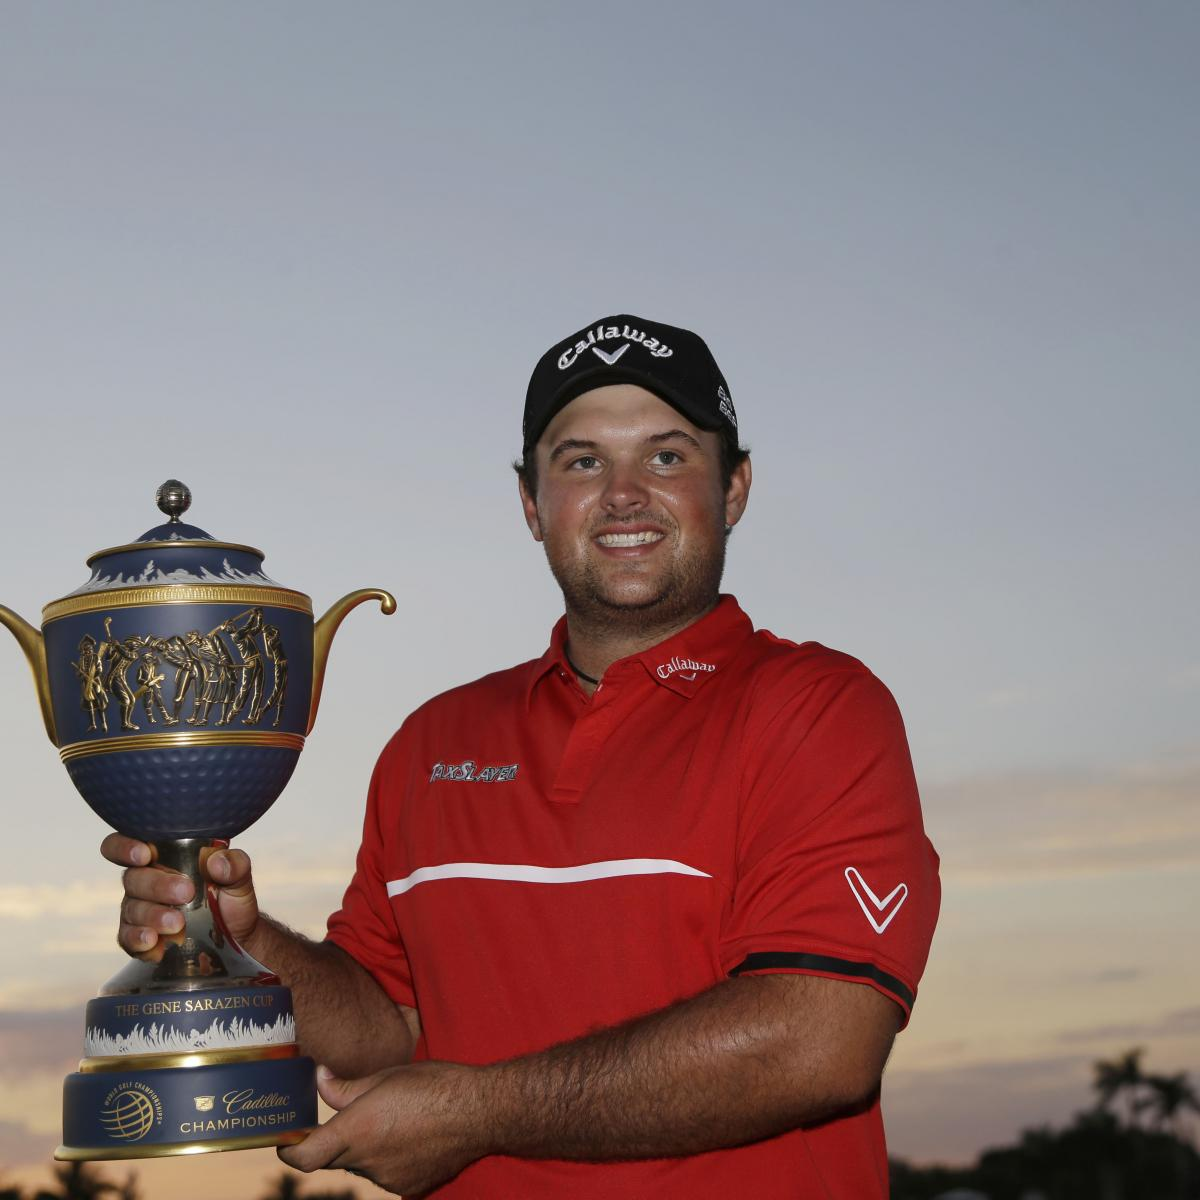 Pga Golf Patrick Reed Is The American Answer To Rory